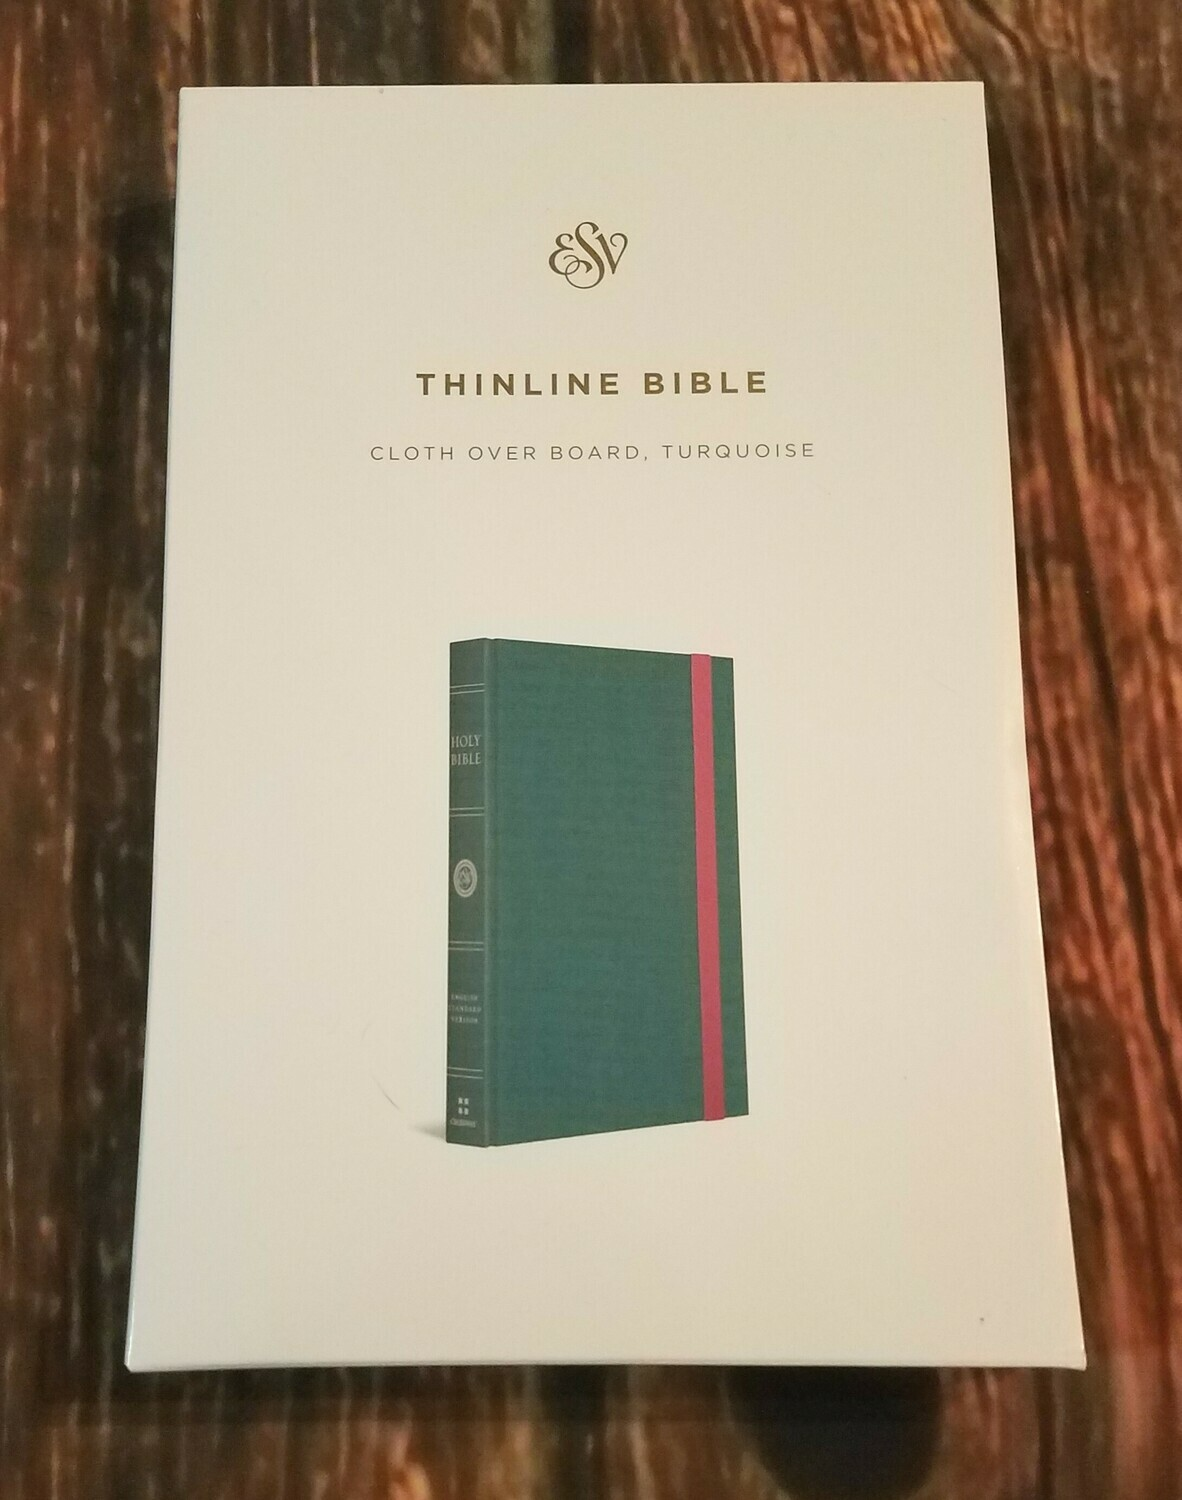 ESV Thinline Bible - Tuquoise Leather